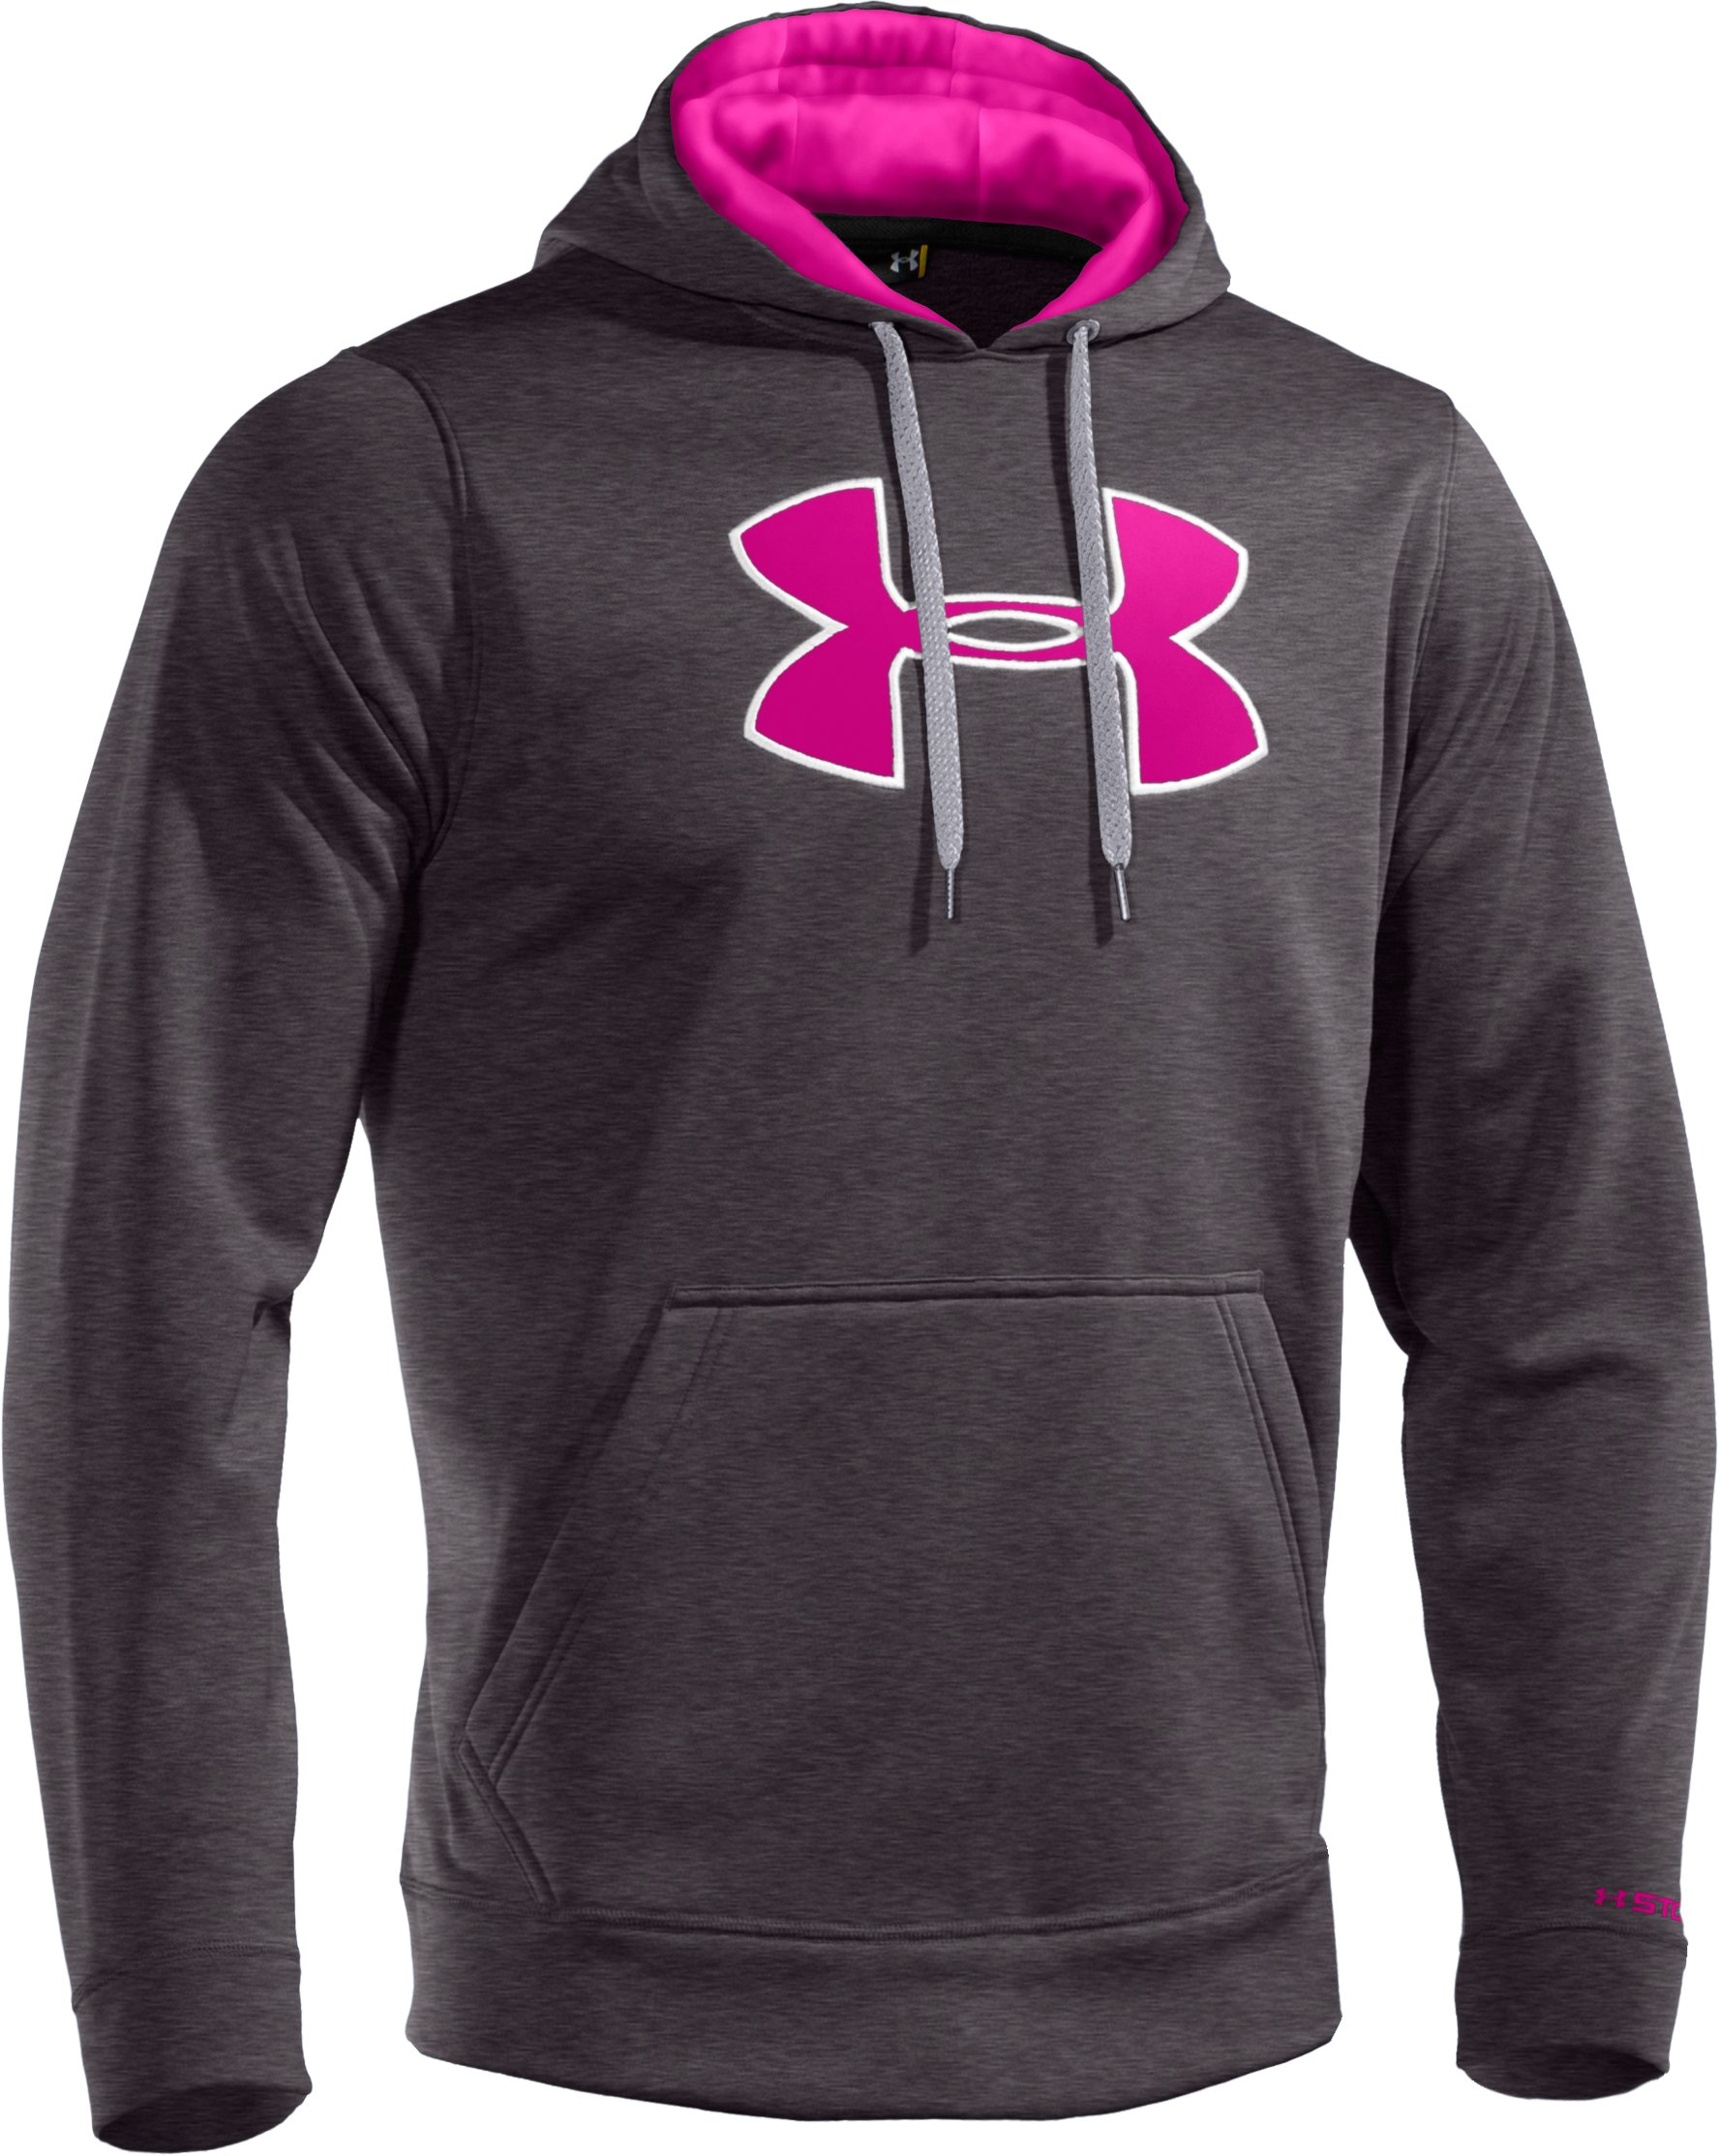 Men's Armour® Fleece Storm Big Logo Hoodie, Carbon Heather, undefined